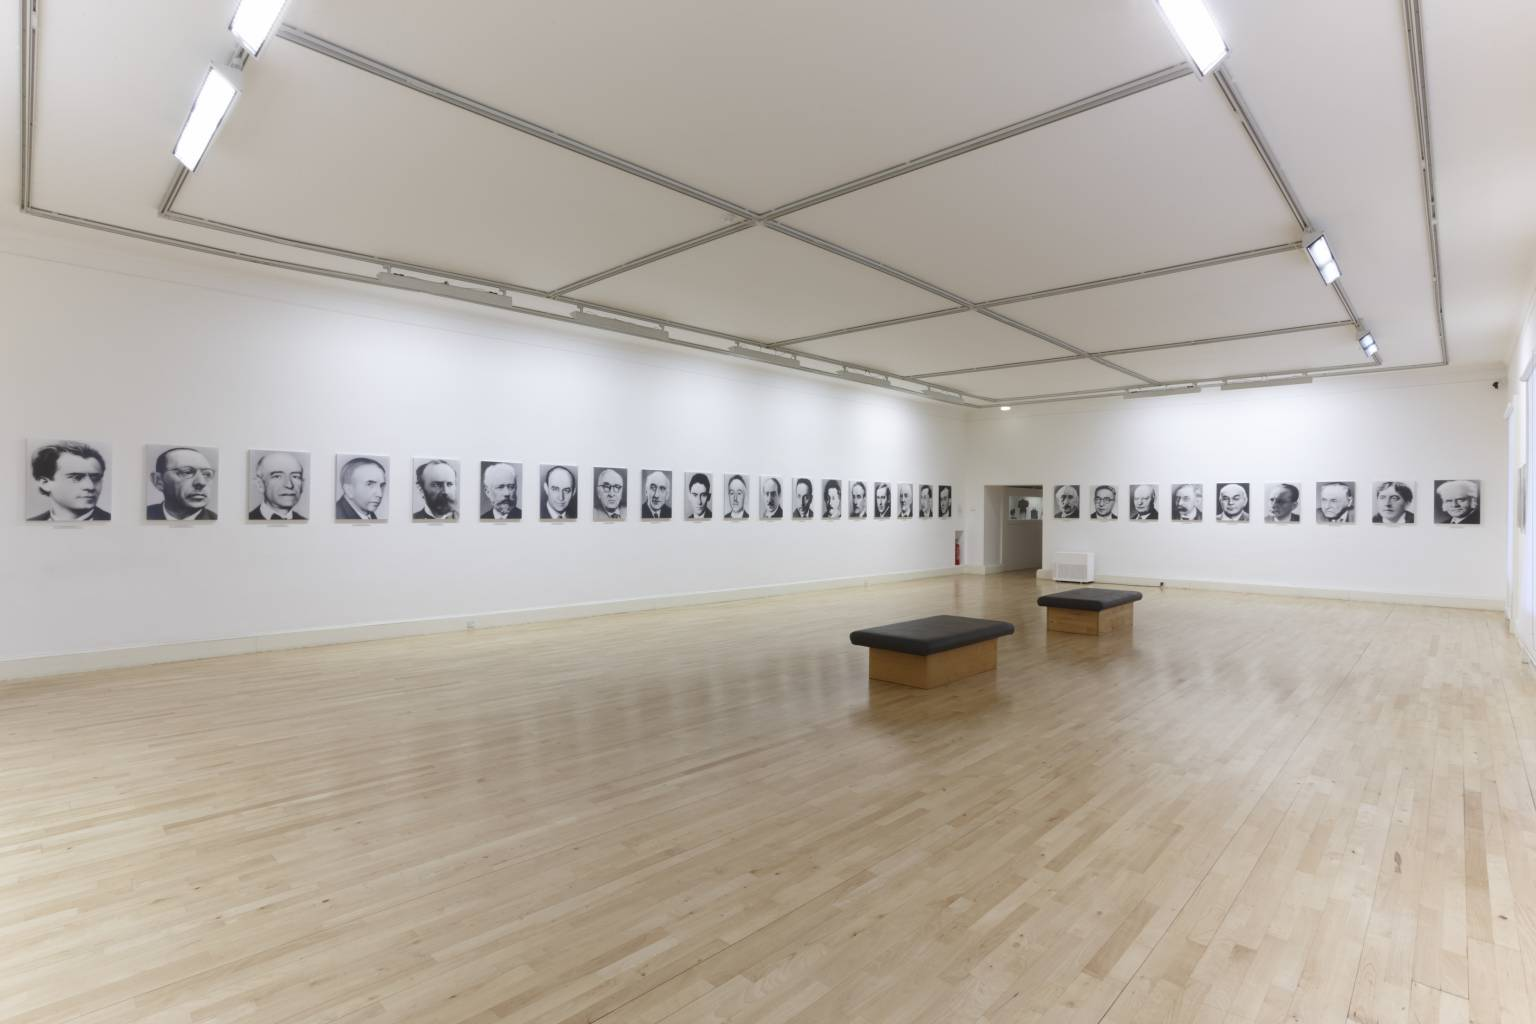 Installation view of 48 Portraits by Gerhardt Richter